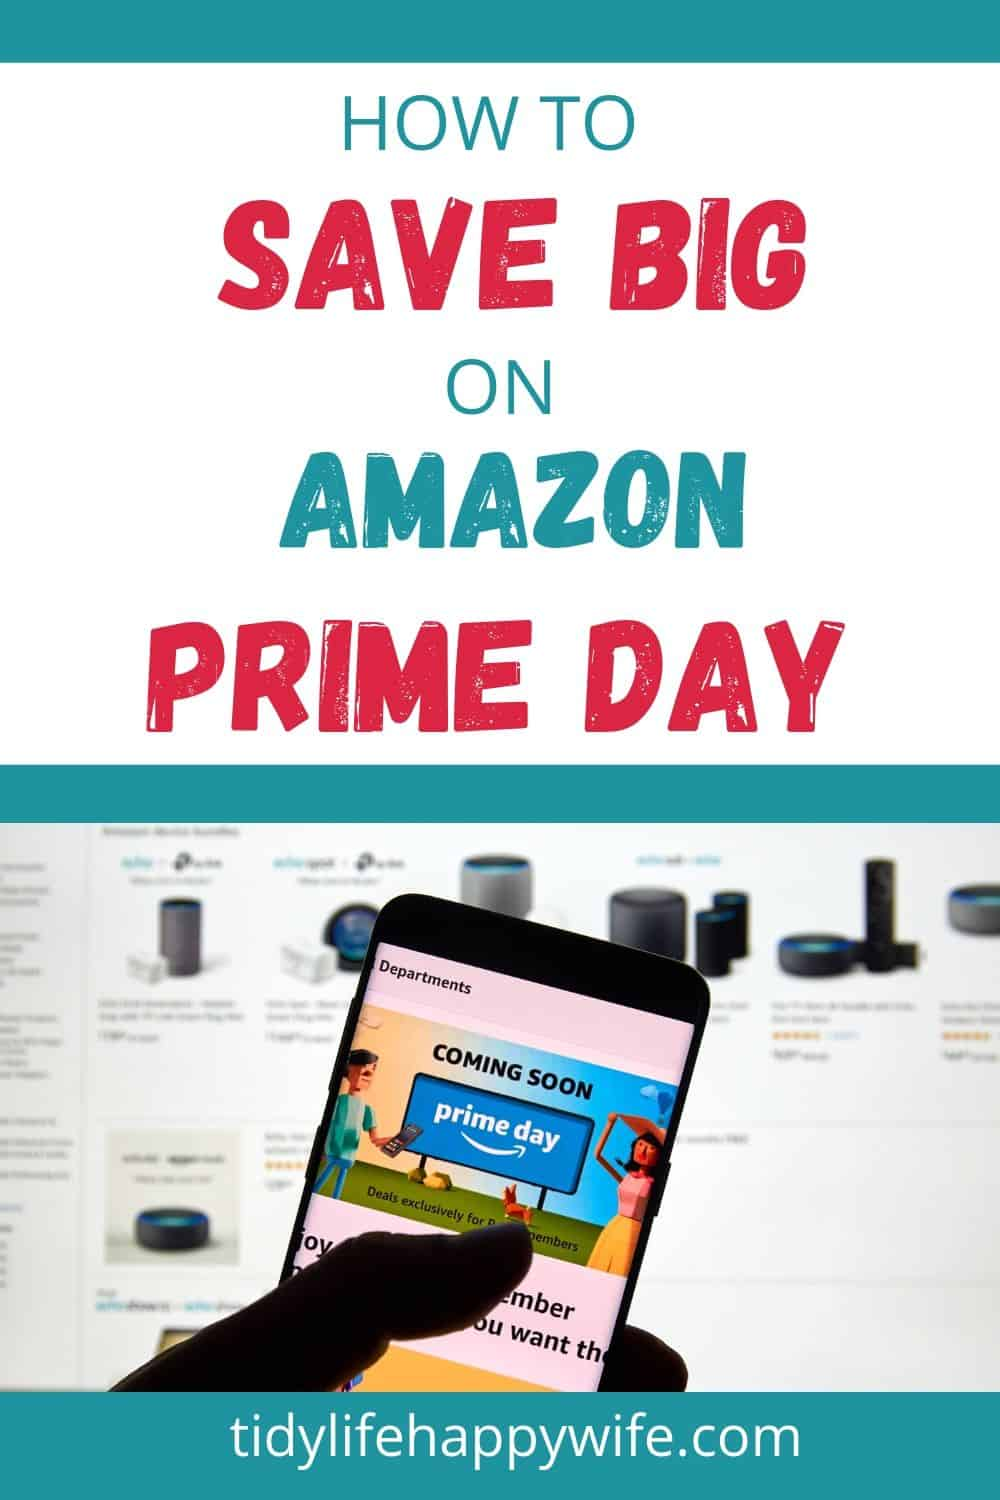 Smartphone with ad for Amazon Prime Day